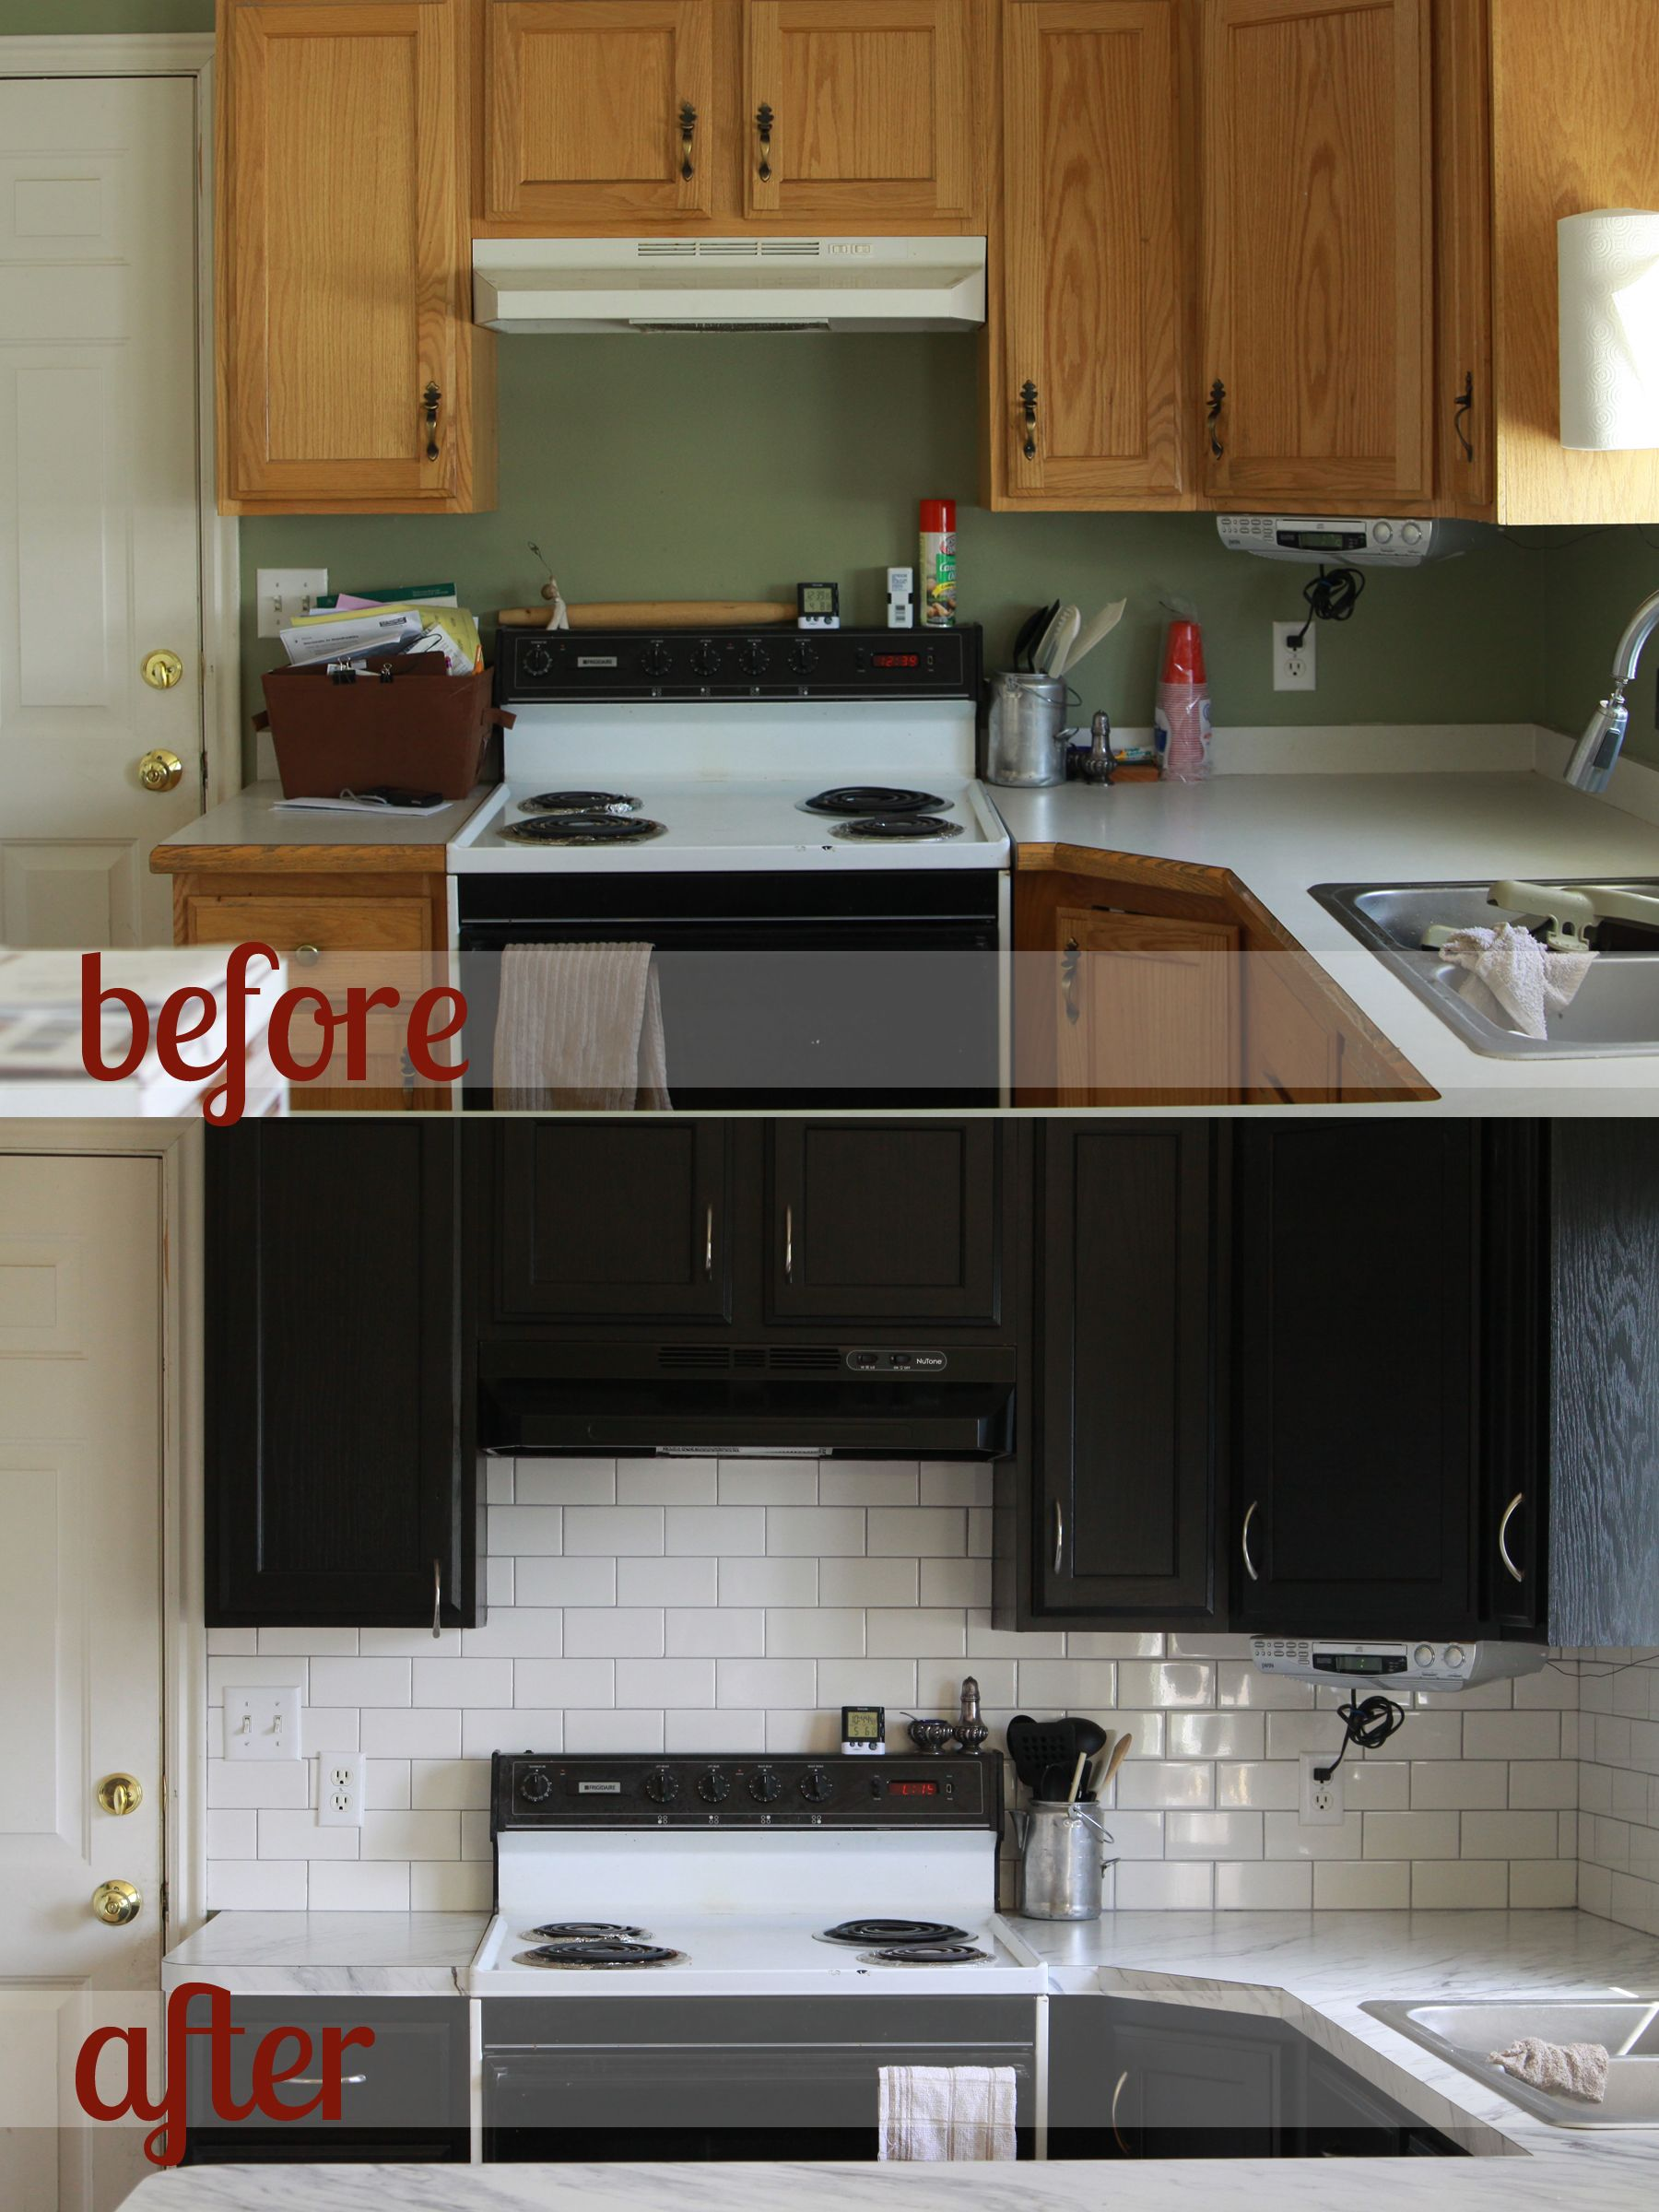 Rustoleum cabinet transformations review before after for Painting kitchen countertops before and after